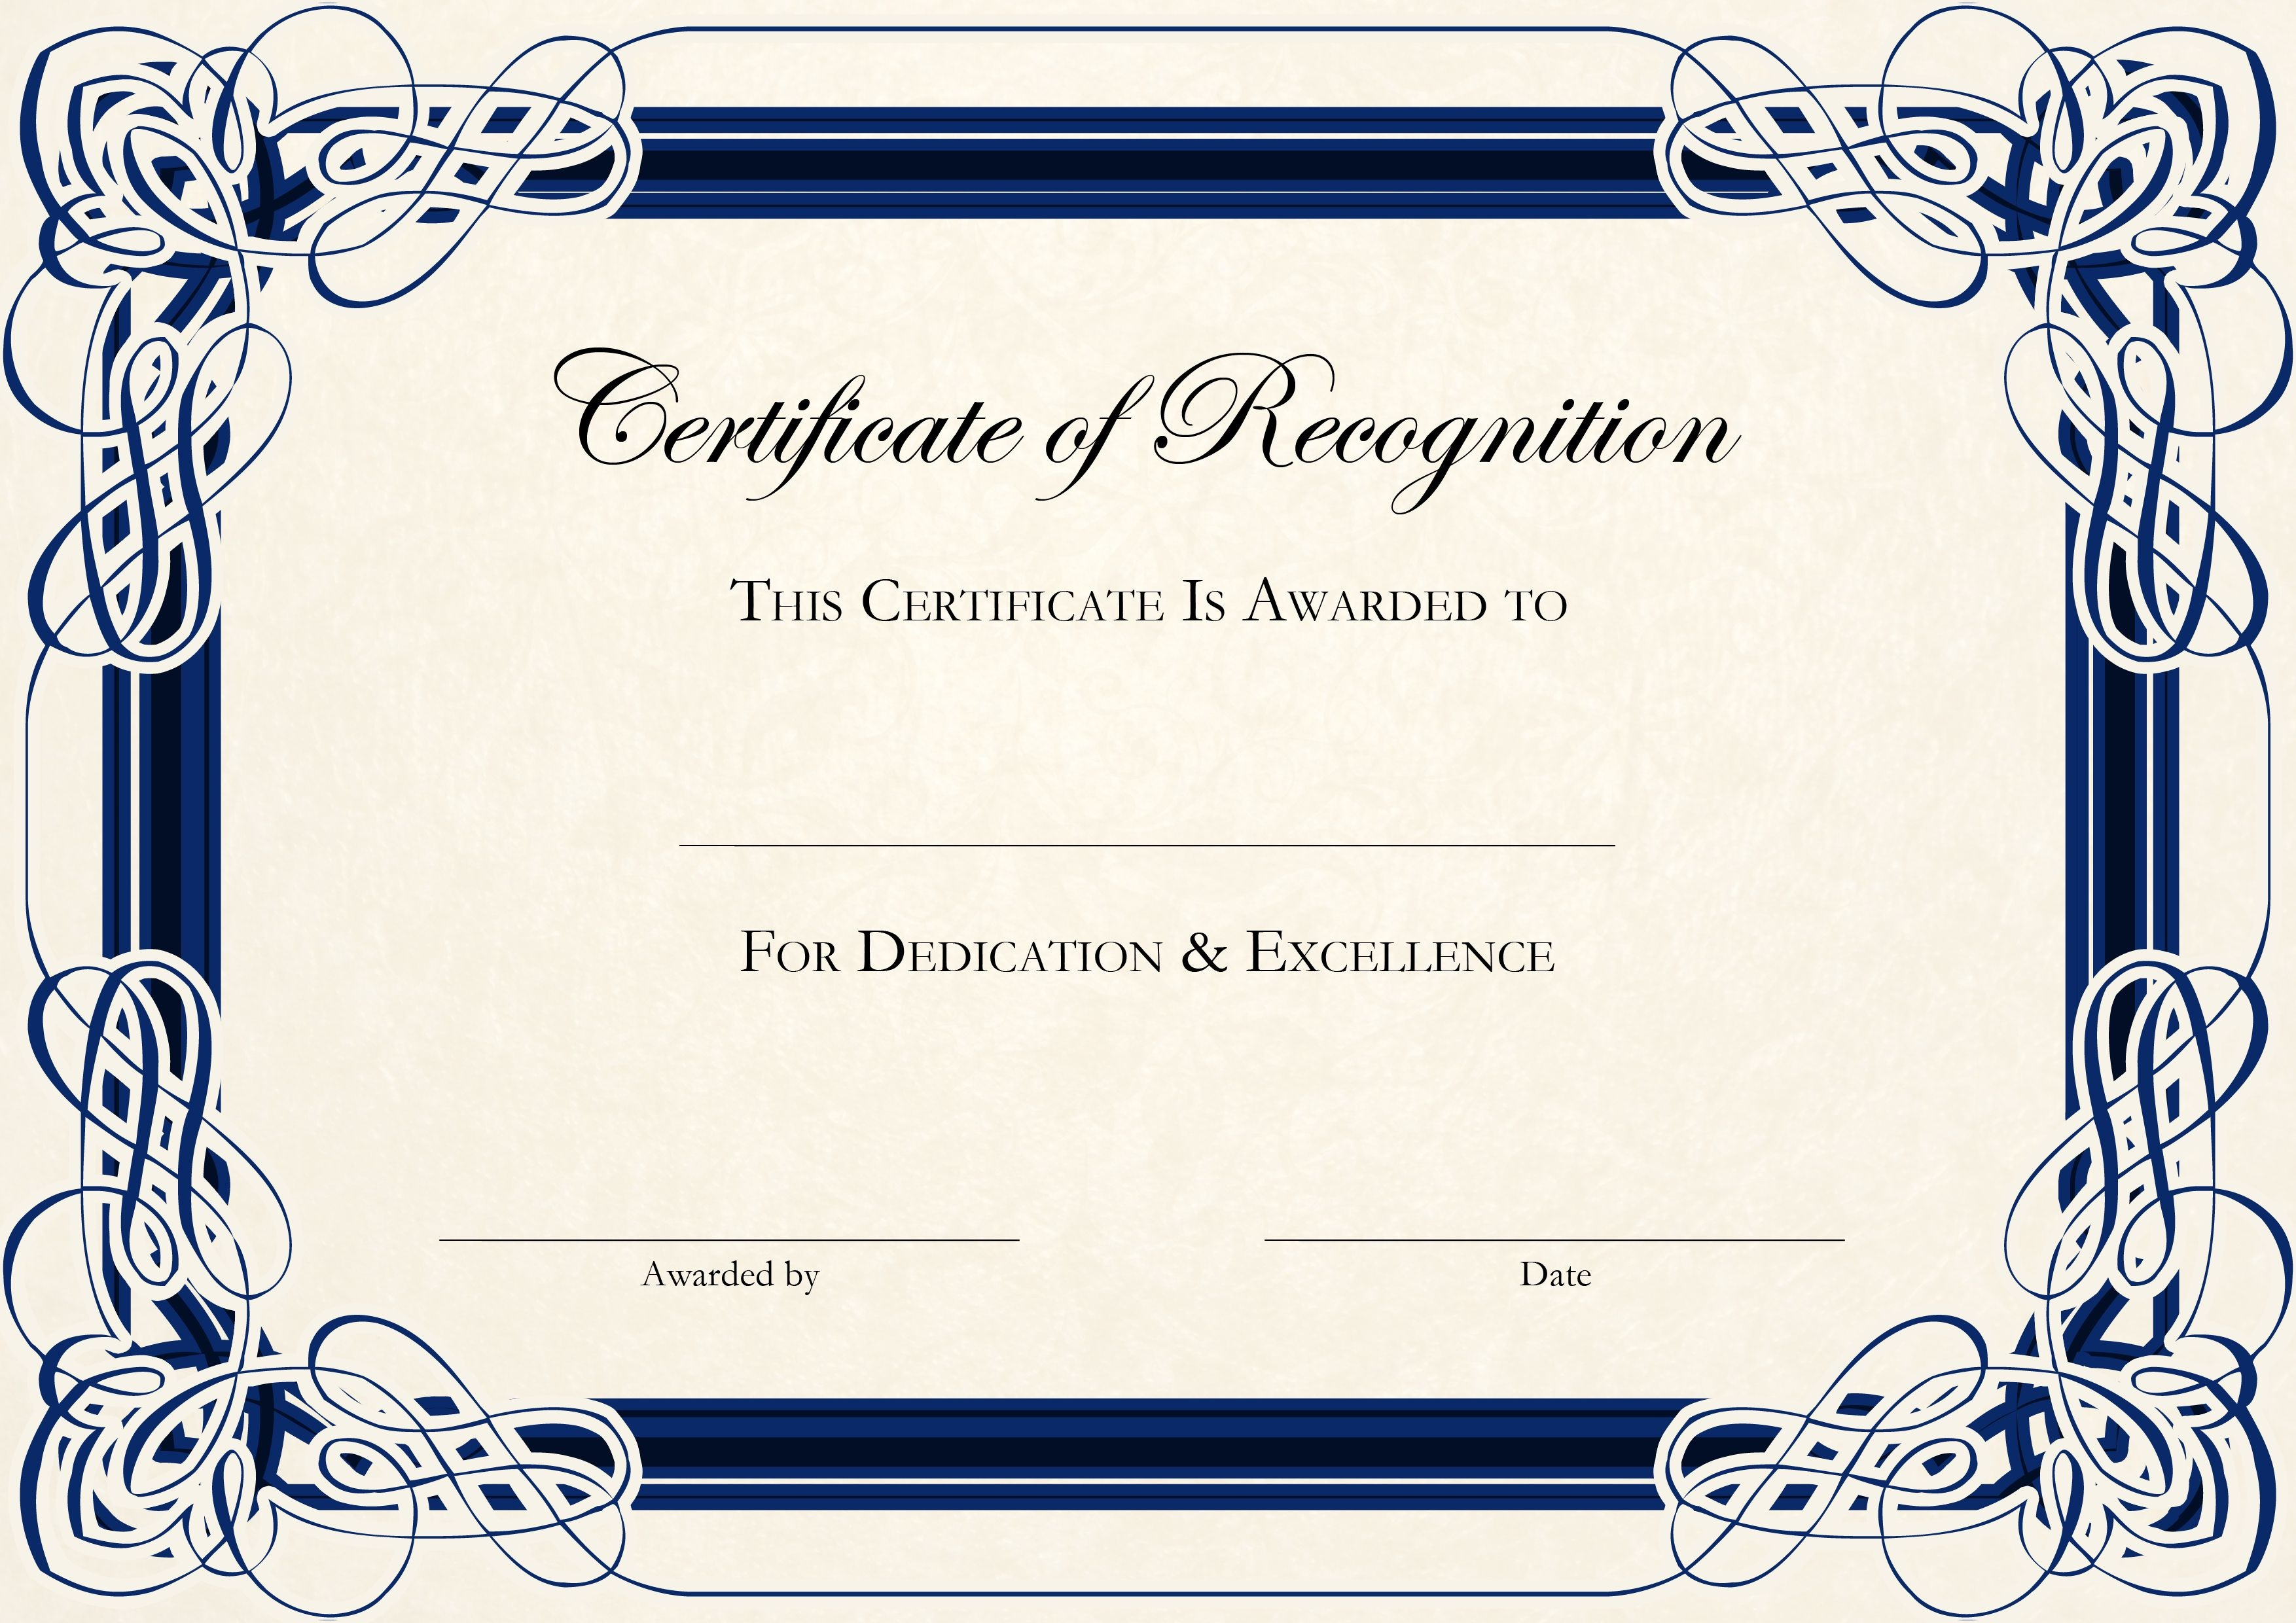 Sports Cetificate | Certificate Of Recognition A4 Thumbnail - Free Printable Templates For Certificates Of Recognition